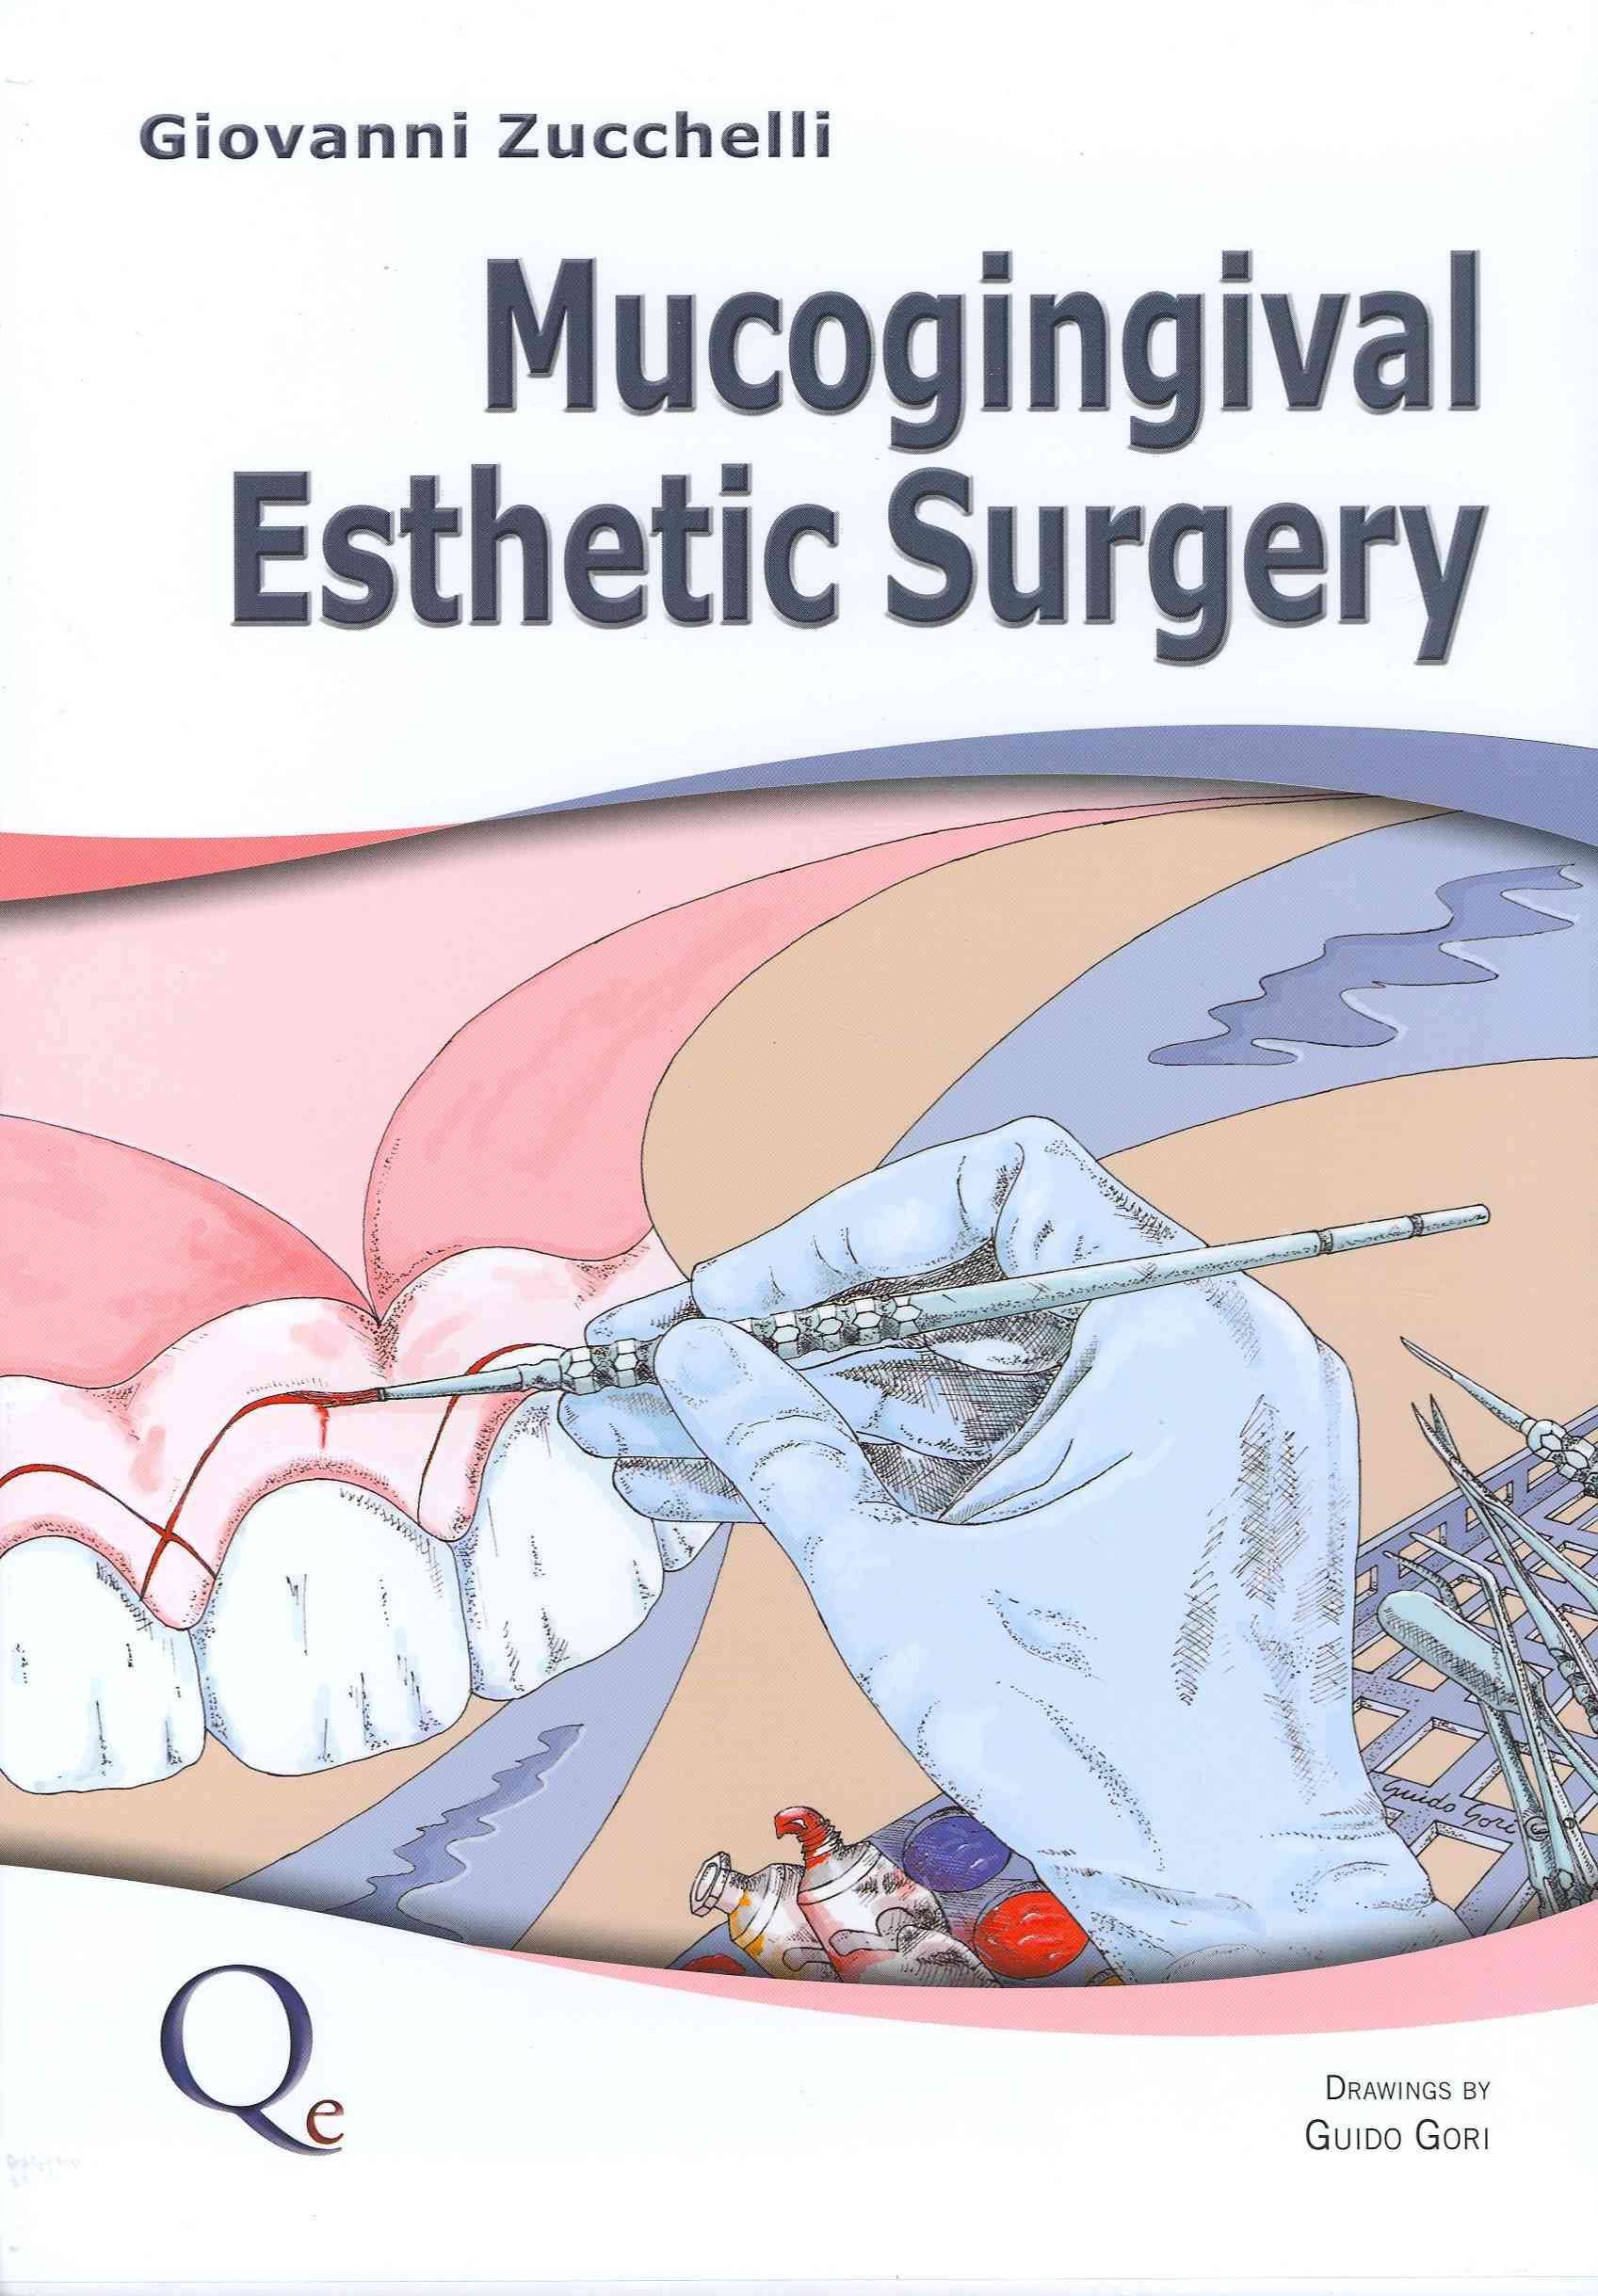 Mucogingival Esthetic Surgery By Zucchelli, Giovanni